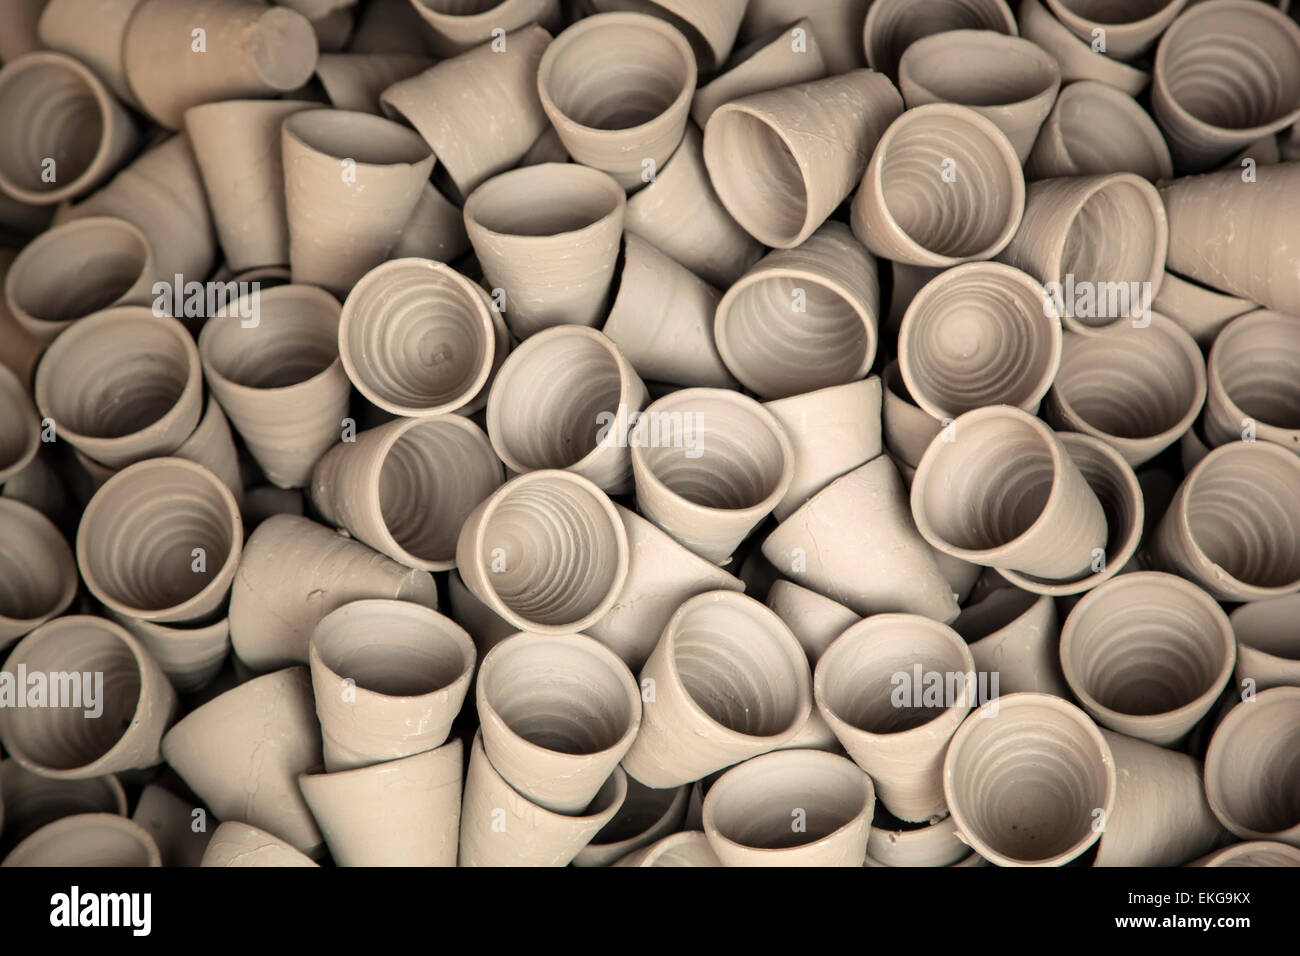 Clay cups, Abaneri, Rajasthan, India - Stock Image